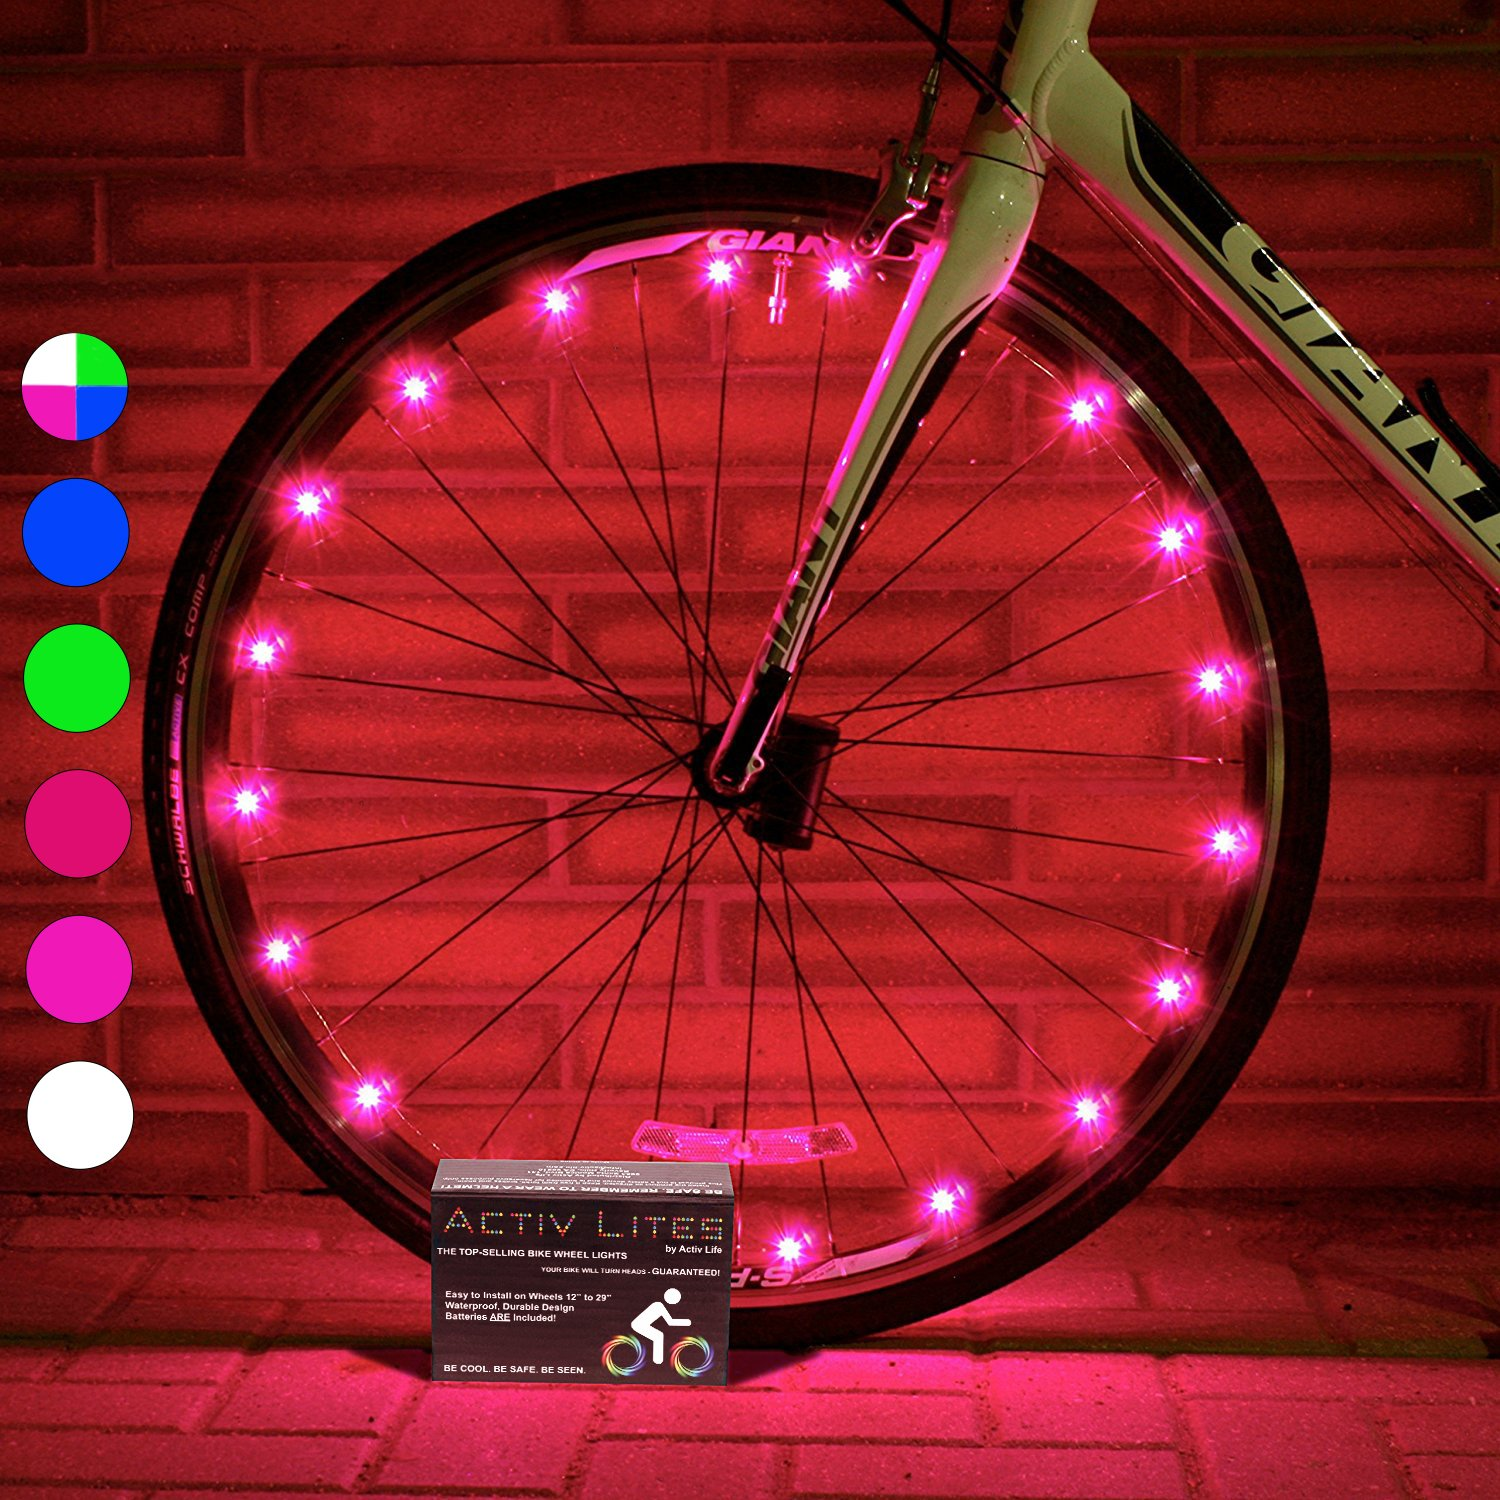 Active Life Bike Wheel Lights (1 Tire, Pink) Top Birthday Presents for Girls 3 Year Old + Teens & Women. Best Unique 2018 Xmas Ideas for Her, Wife, Mom, Friend, Sister, Girlfriend and Popular Aunts